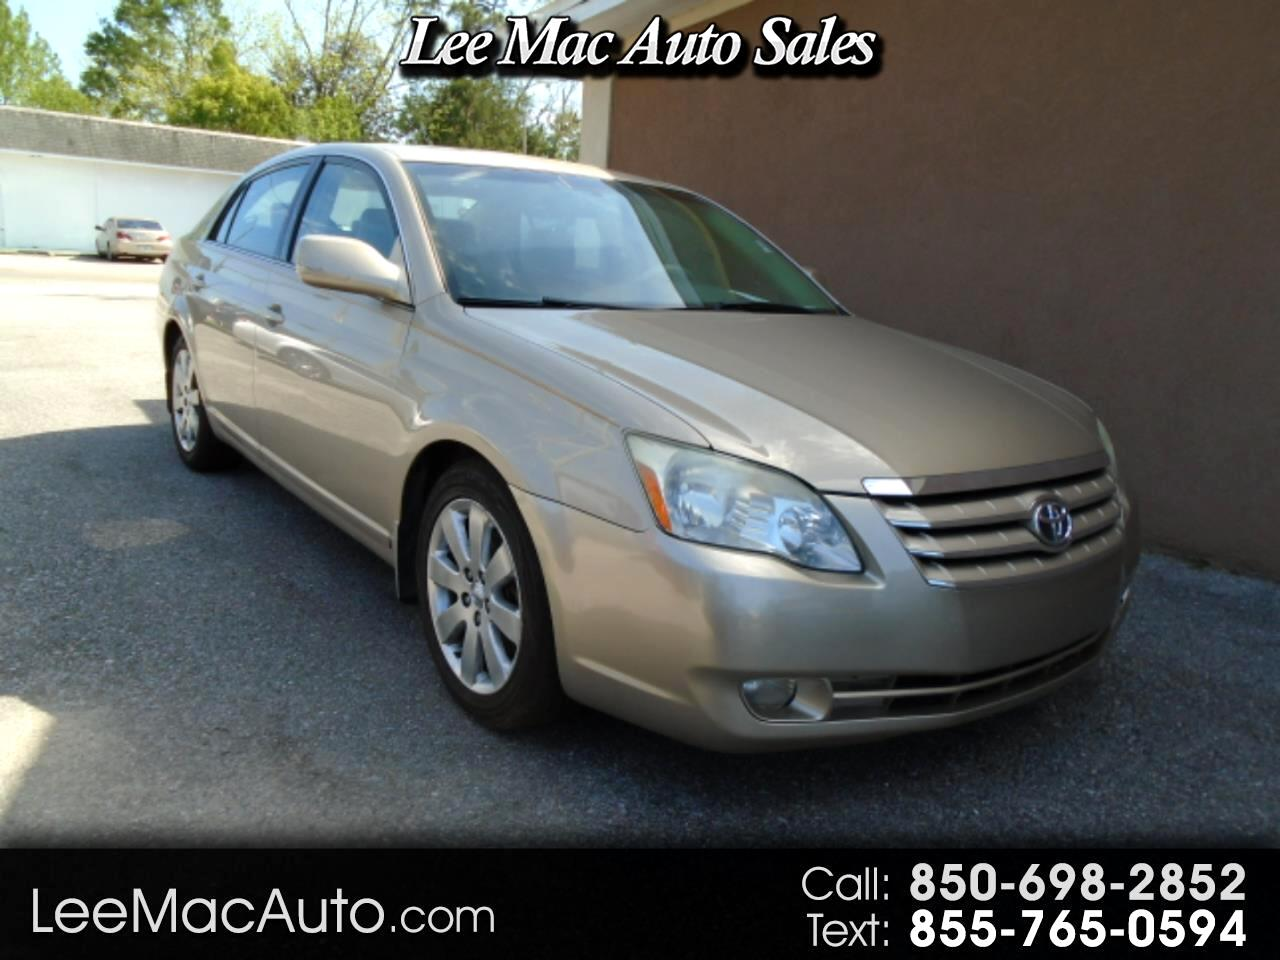 Toyota Avalon 4dr Sdn Touring (Natl) 2006